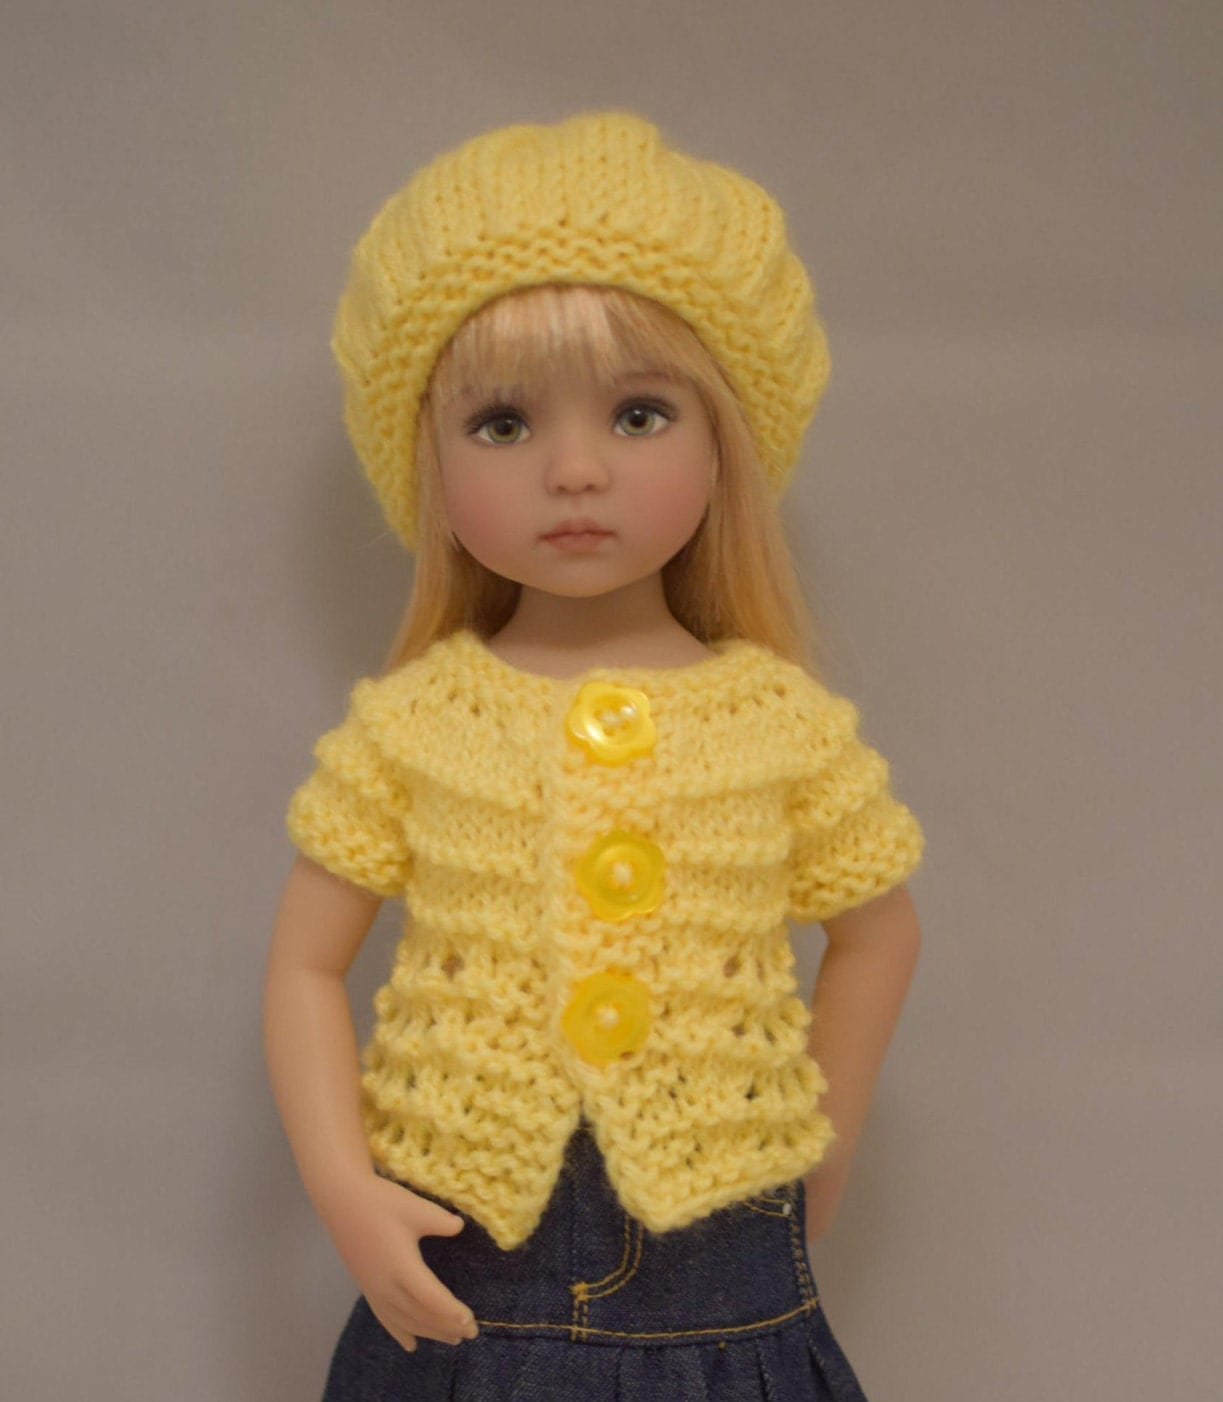 Knitting Pattern Dolls Hat : 1. Sweaters & Hat PDF Knitting Pattern for Dianna Effner